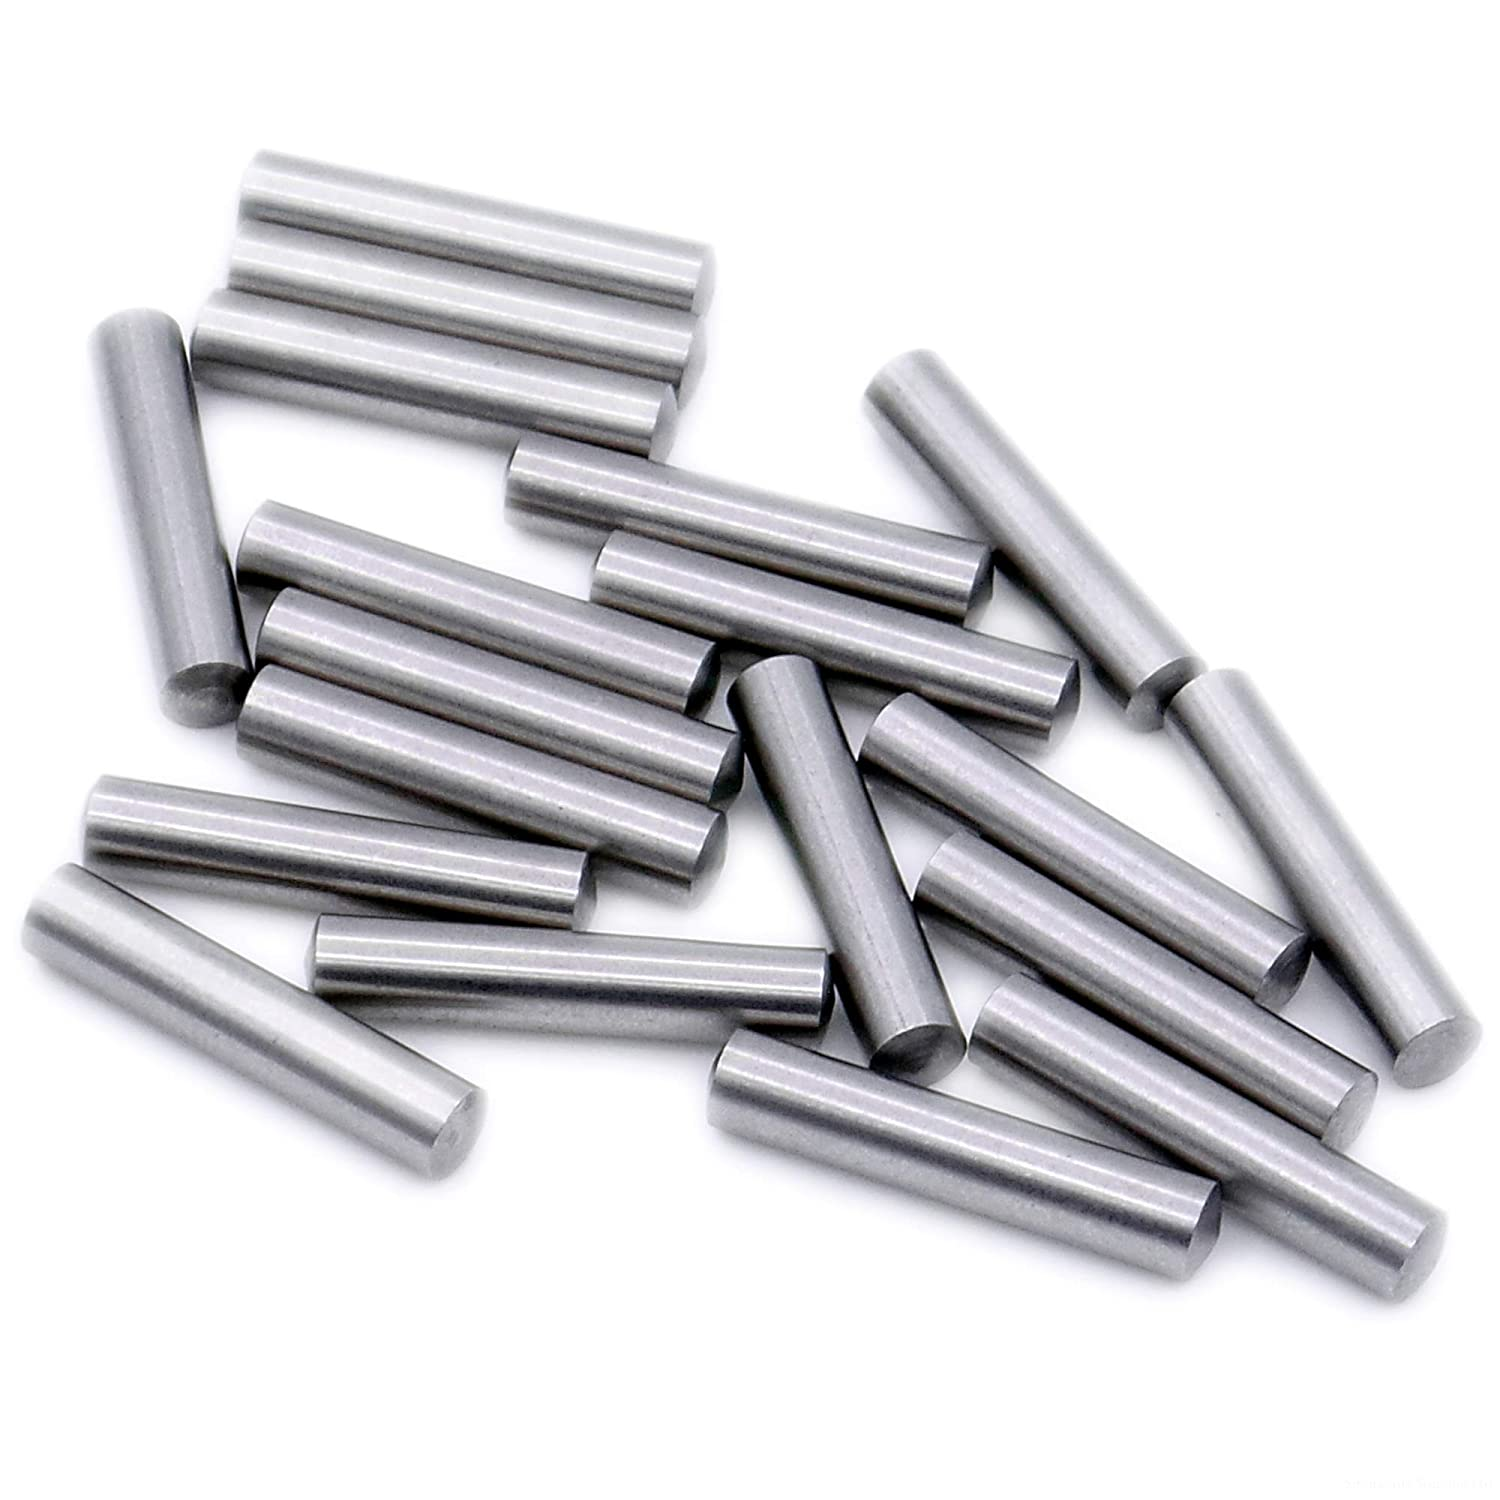 Dowel Pins A1 1mm x 18mm Pack of 20 - Stainless Steel D1 M6